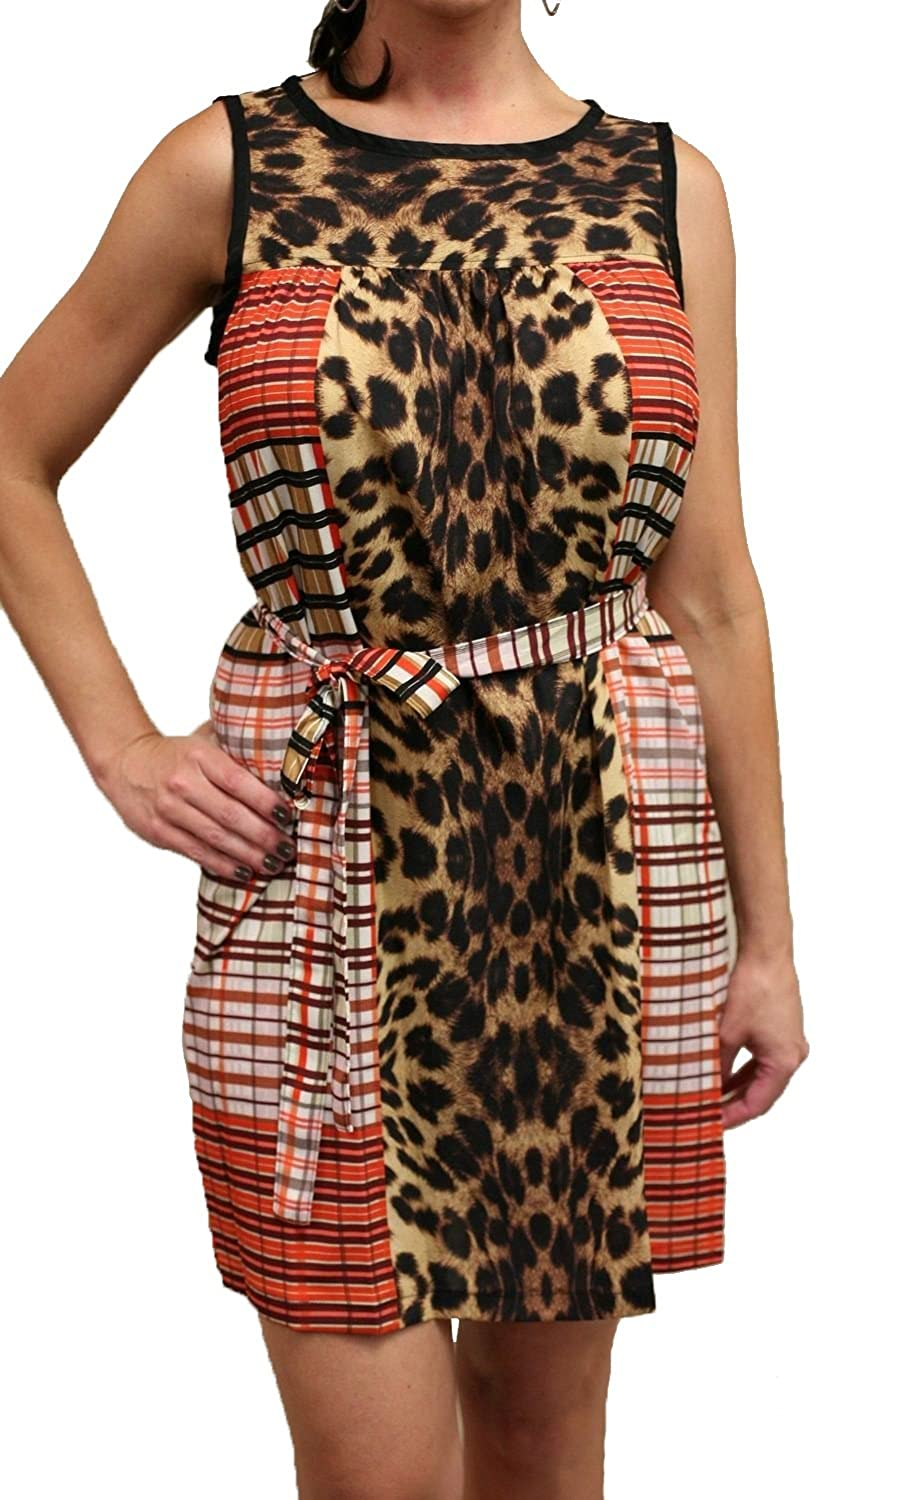 Uncle Frank 71319 Sleeveless Leopard Print Dress with Plaid Sides